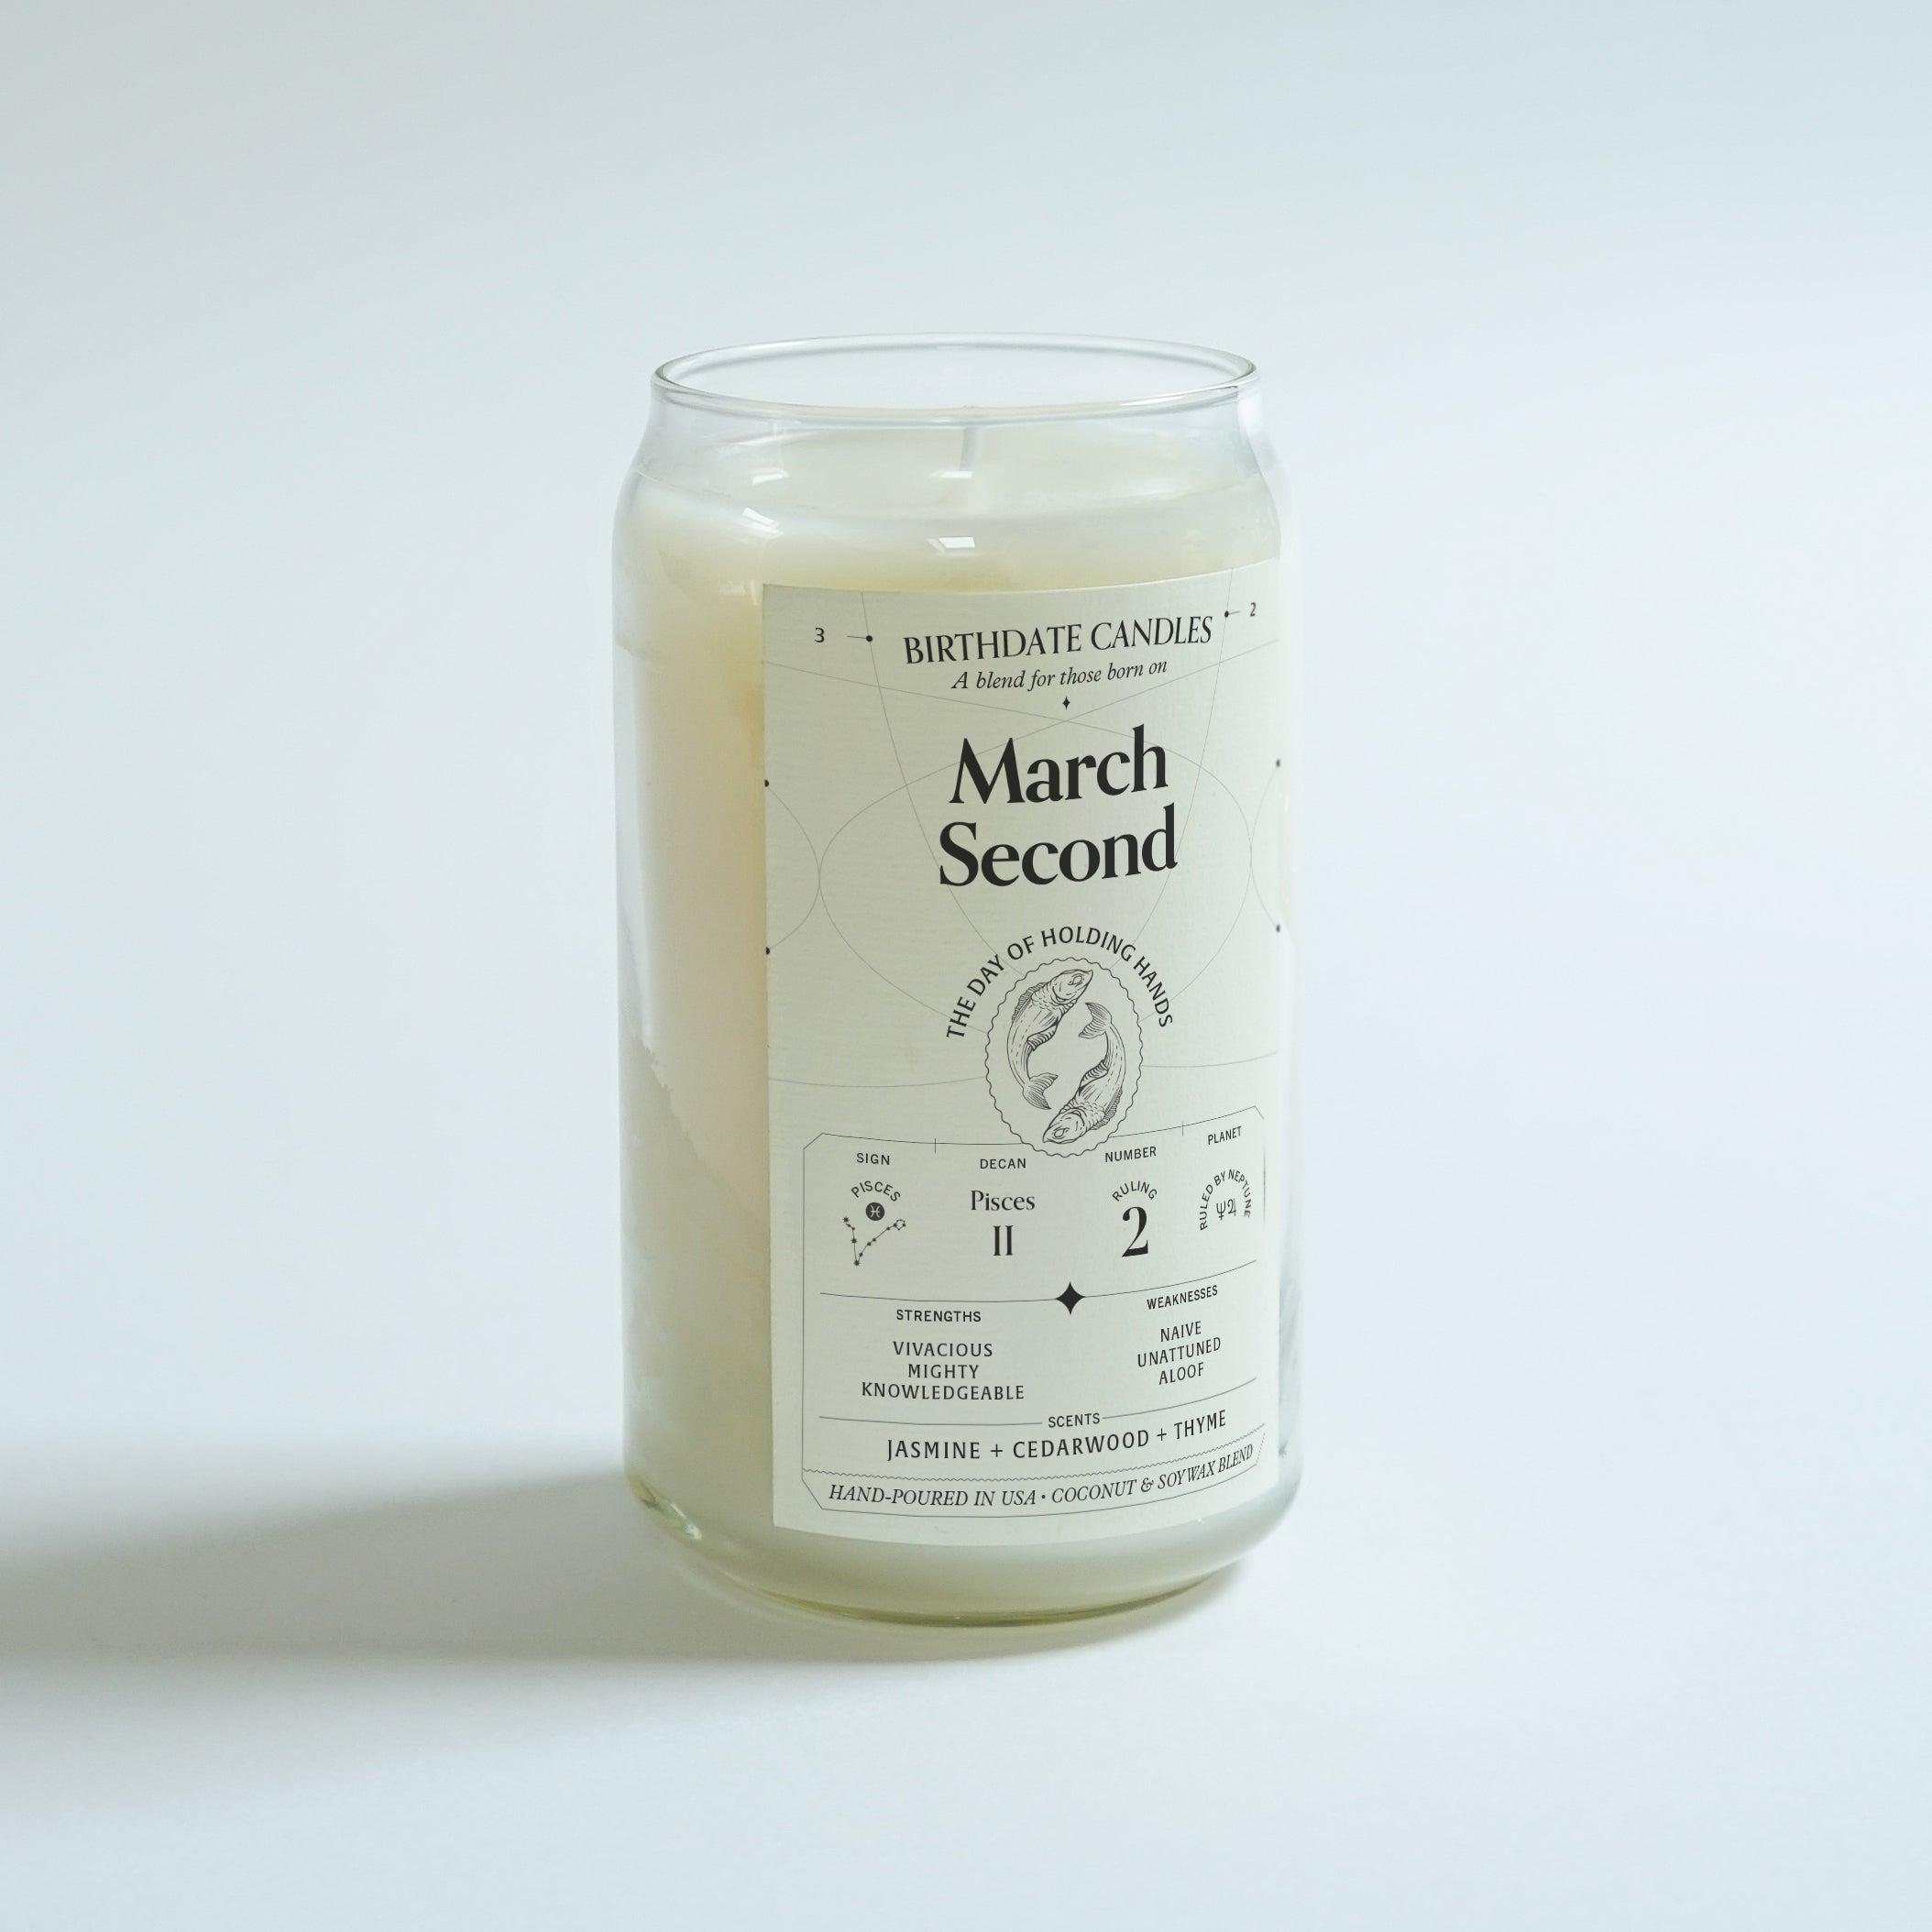 The March Second Candle